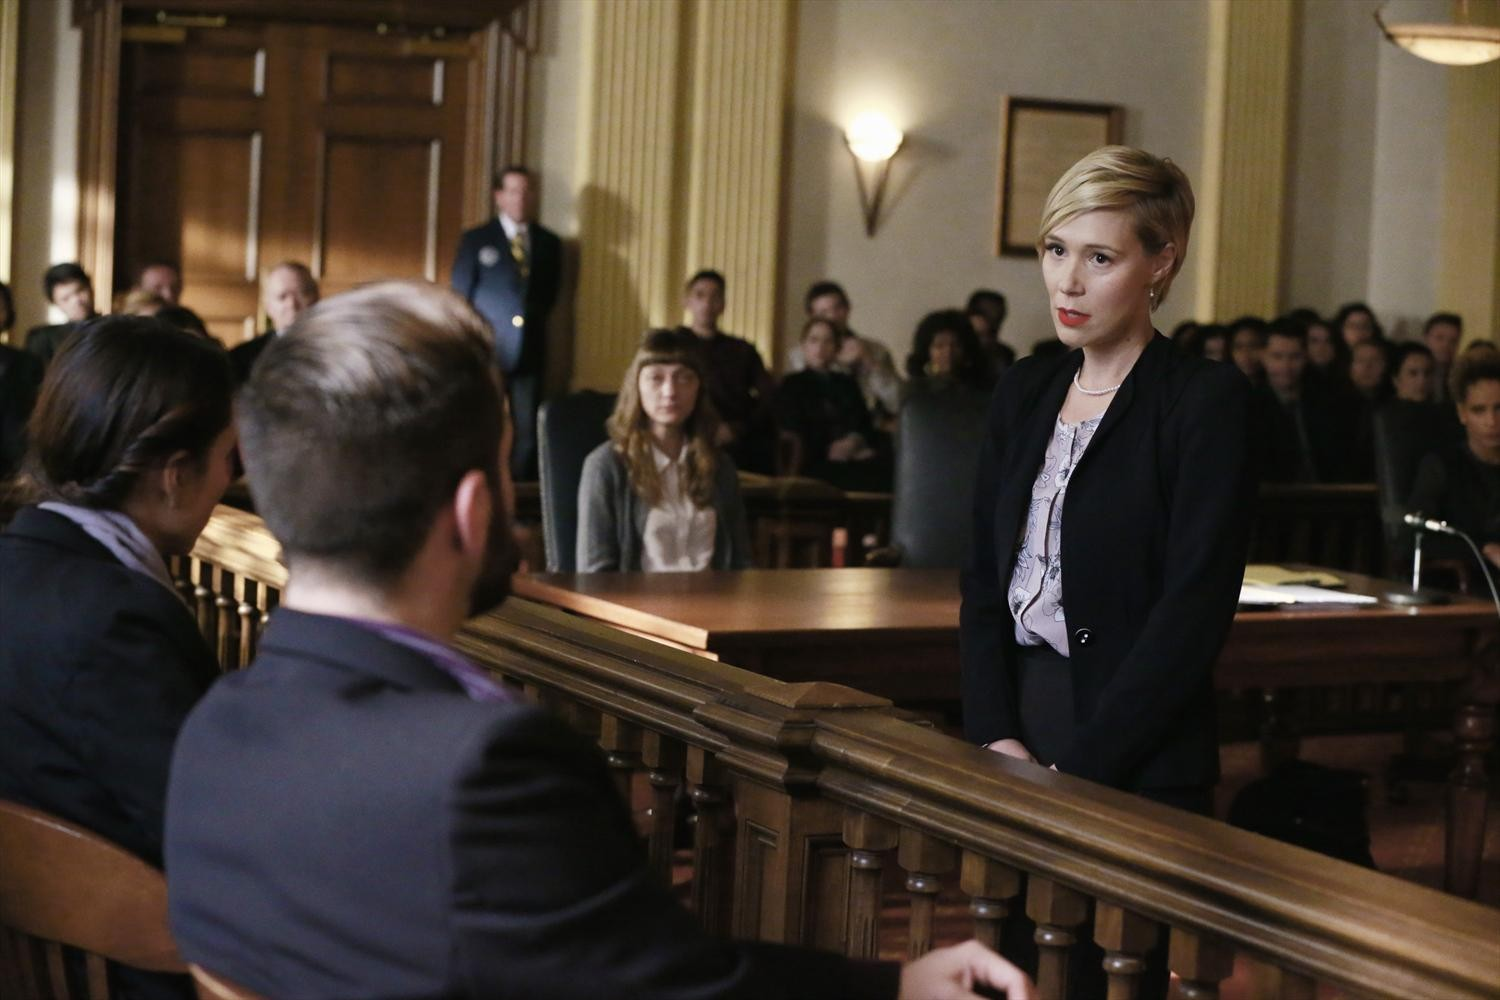 vid now how to get away with murder